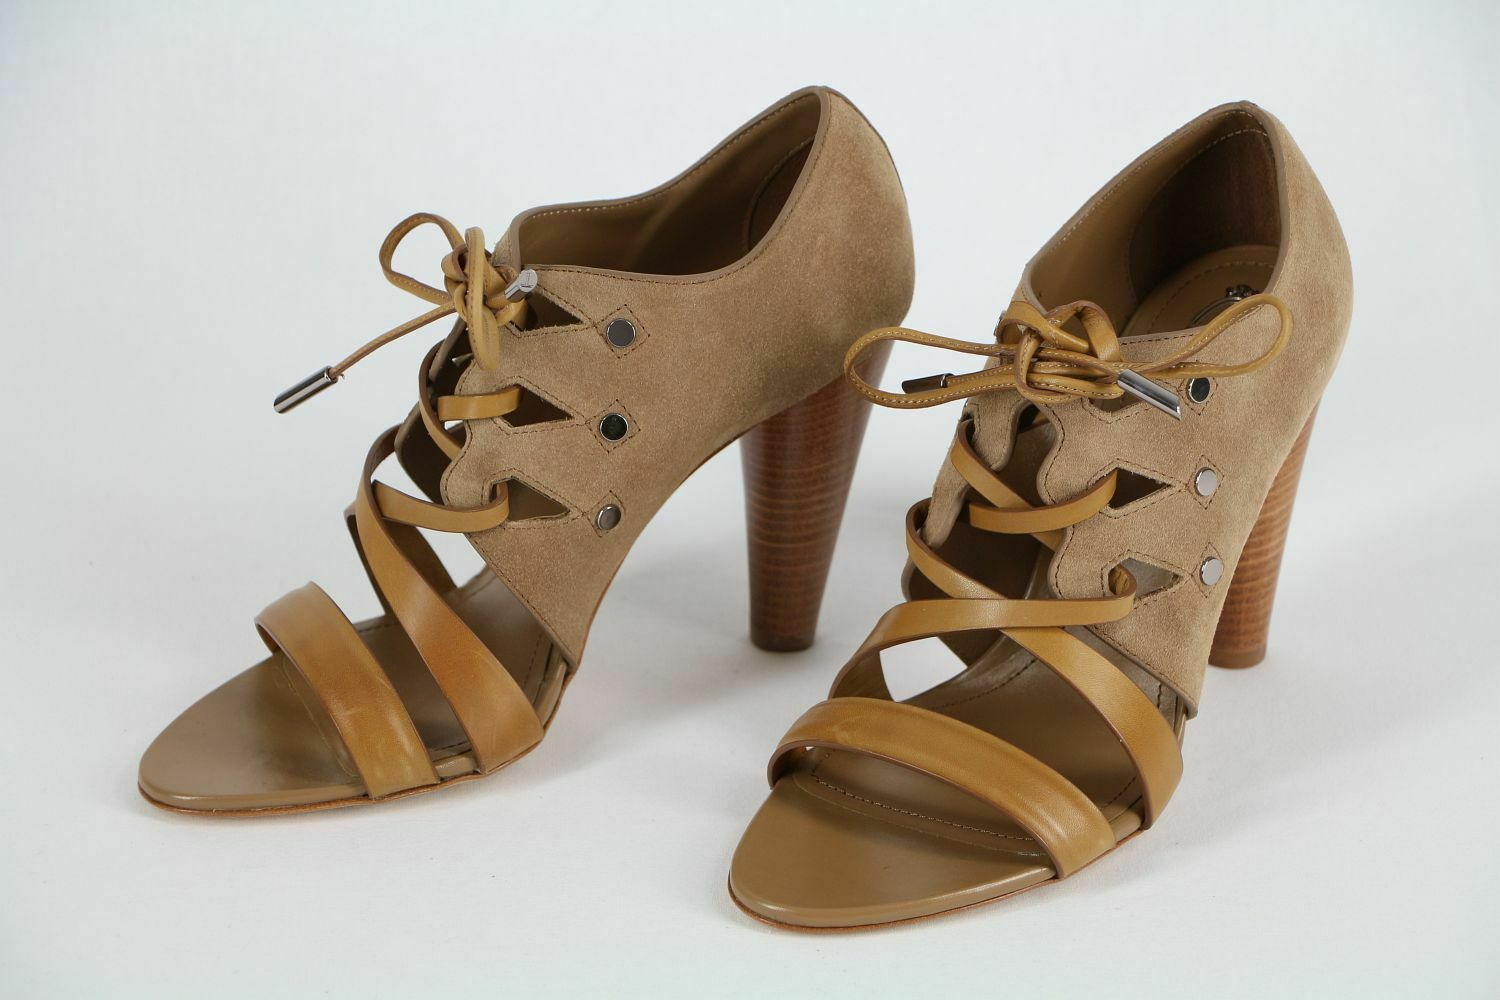 TOD'S Damen Sandalen, Gr. 37,5   UK 4.5   US 7.5  Made in